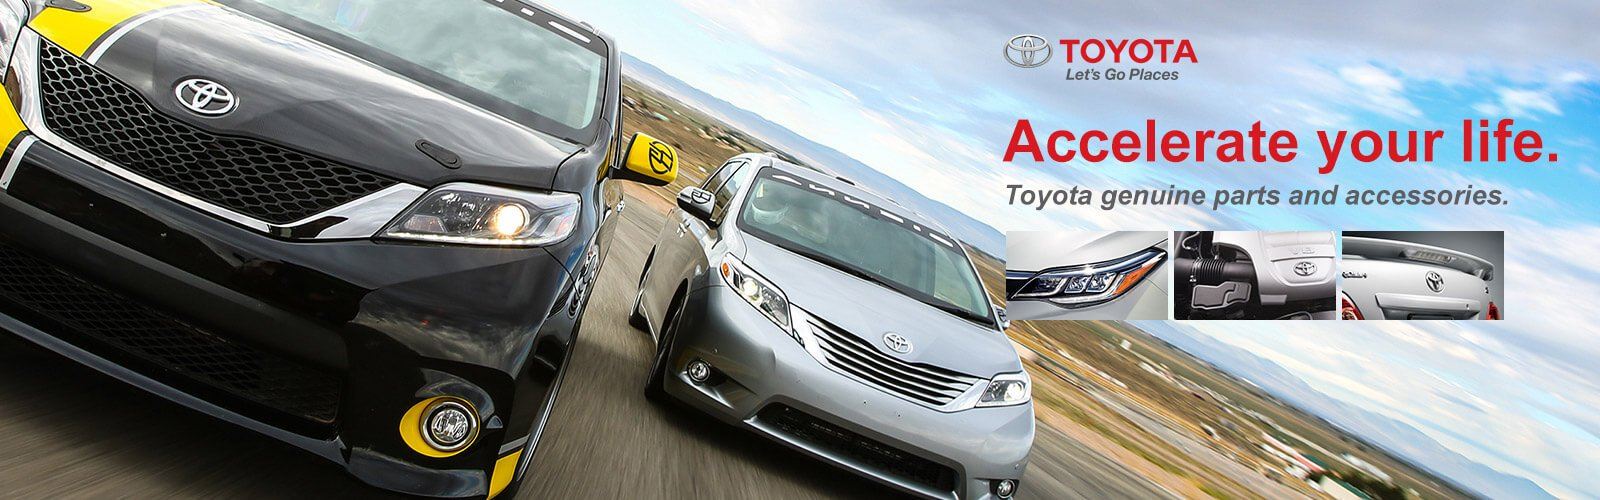 Toyota genuine parts and accessories